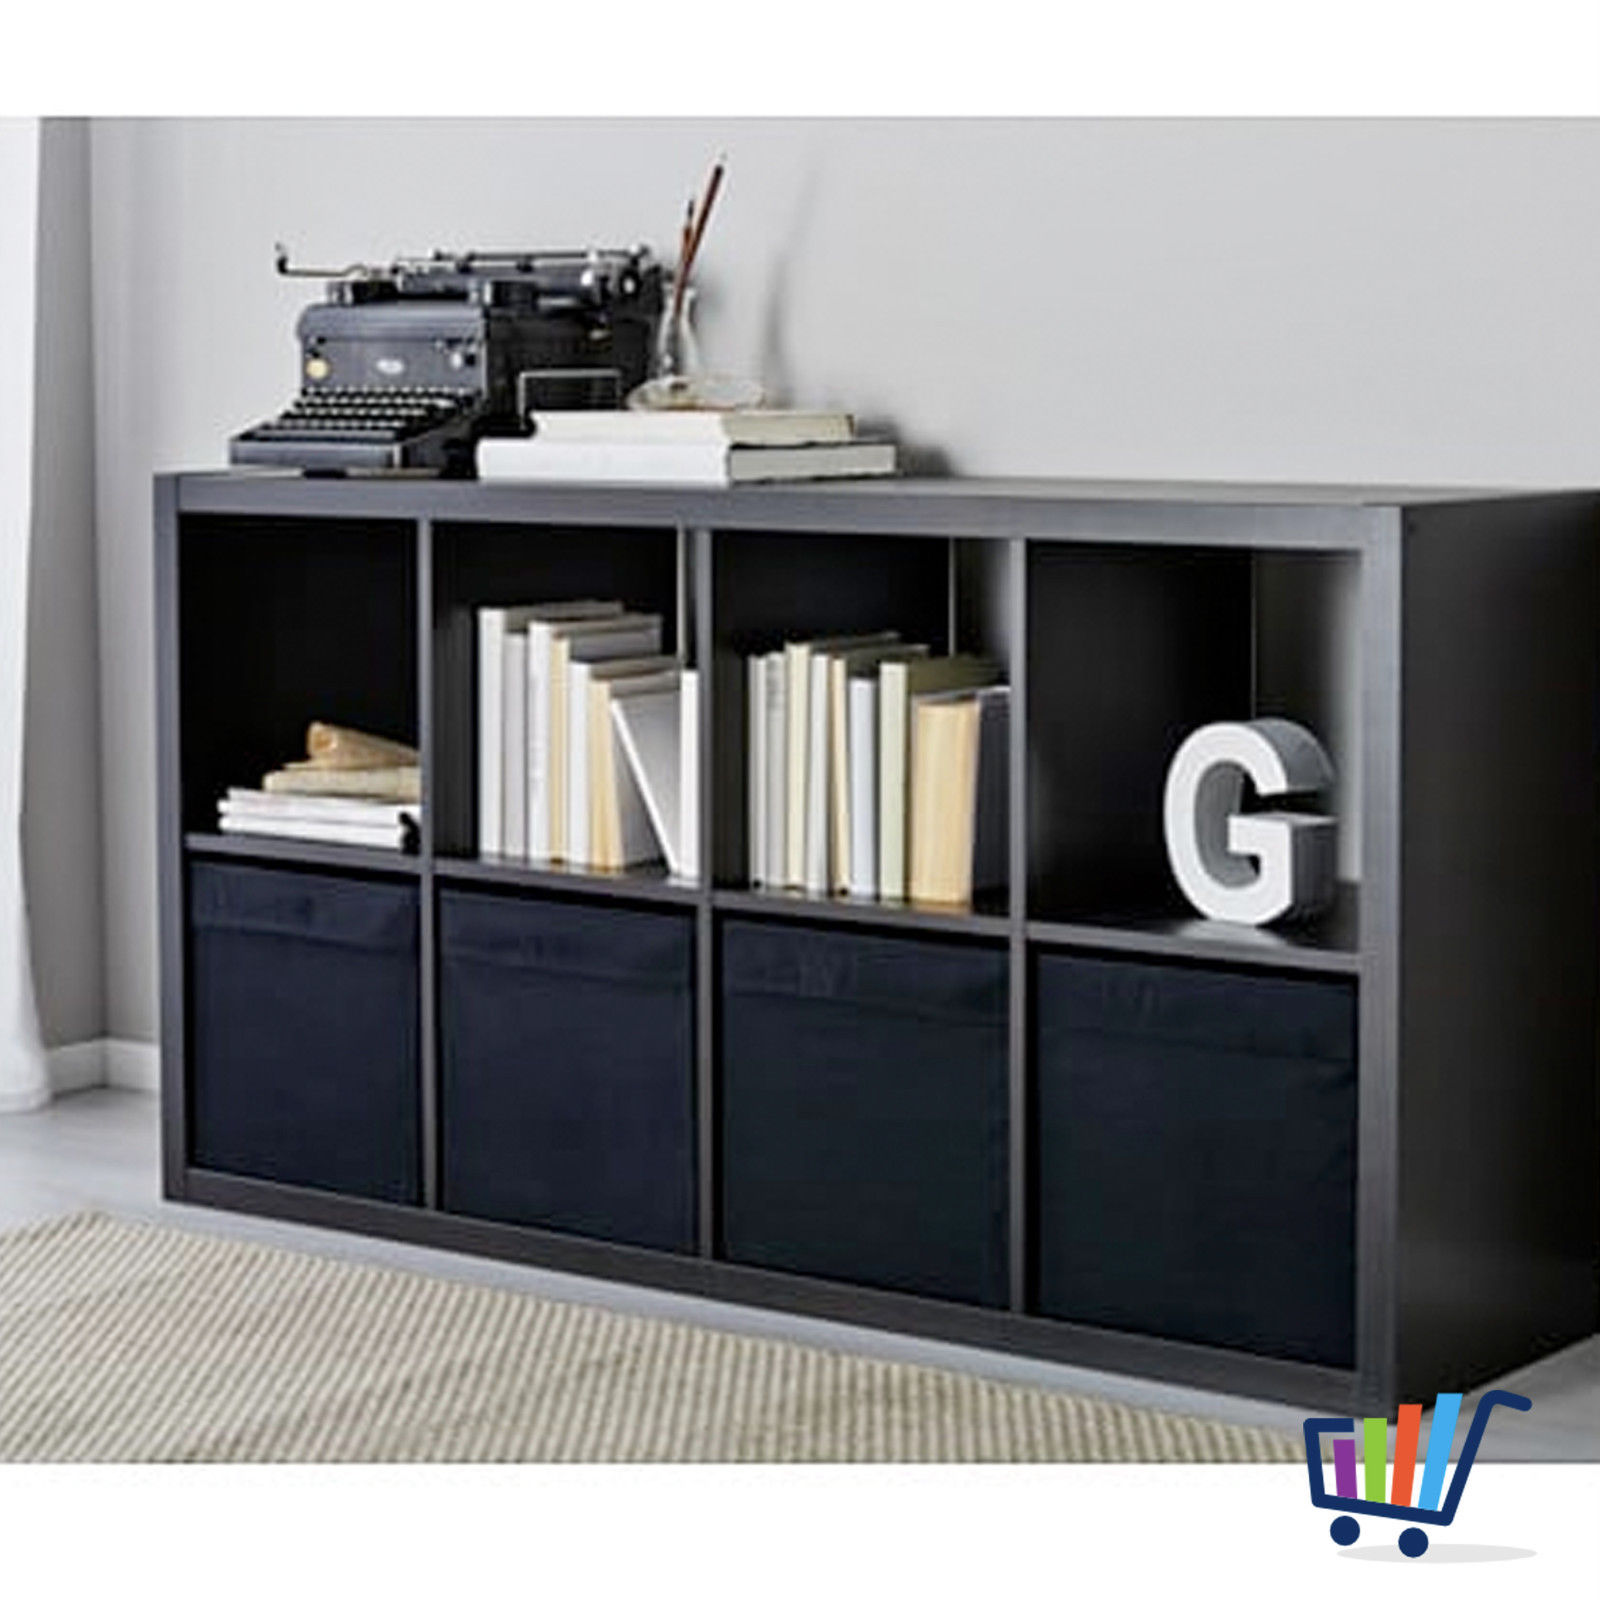 Cube storage unit with boxes best screwdriver bits for cordless drill